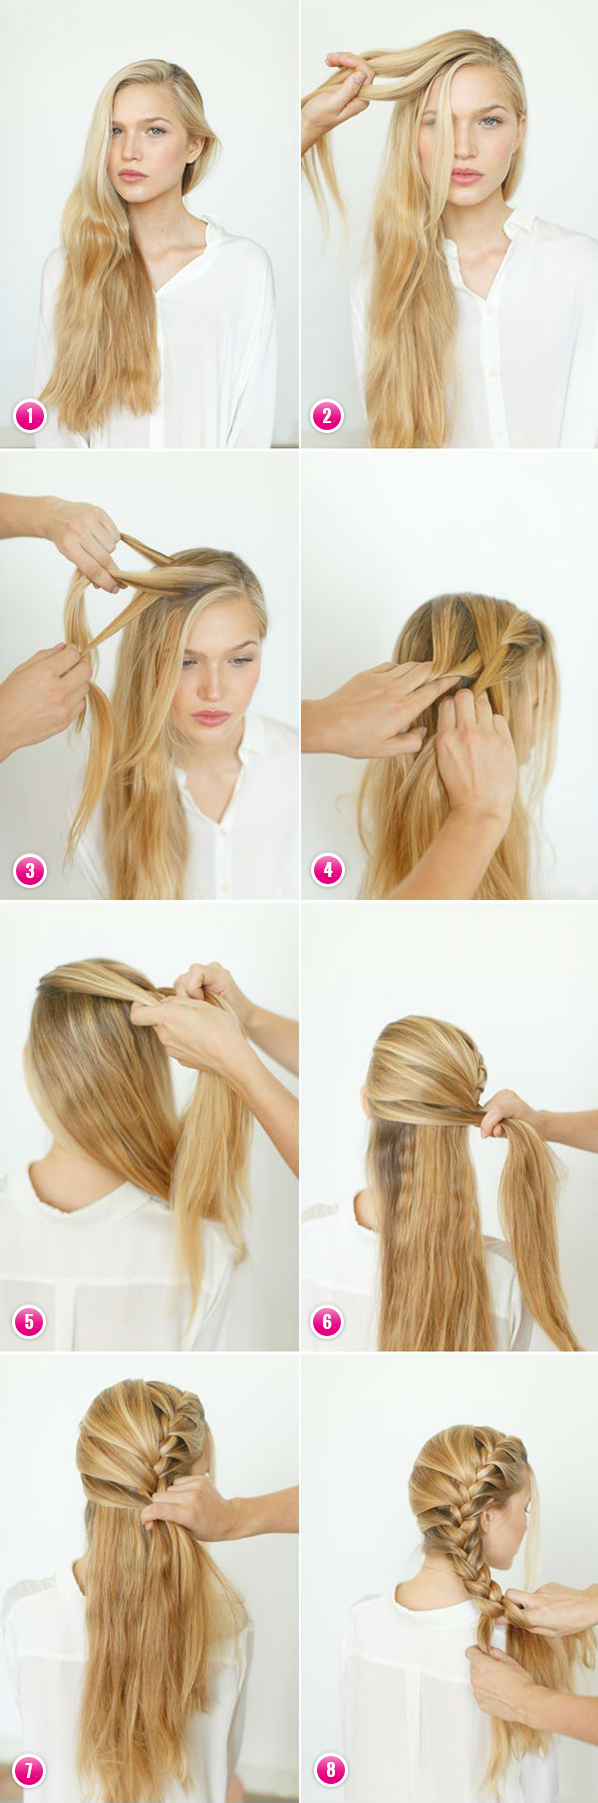 Hairstyles For Long Hair How To Make : Creative hairstyles for long hair her beauty